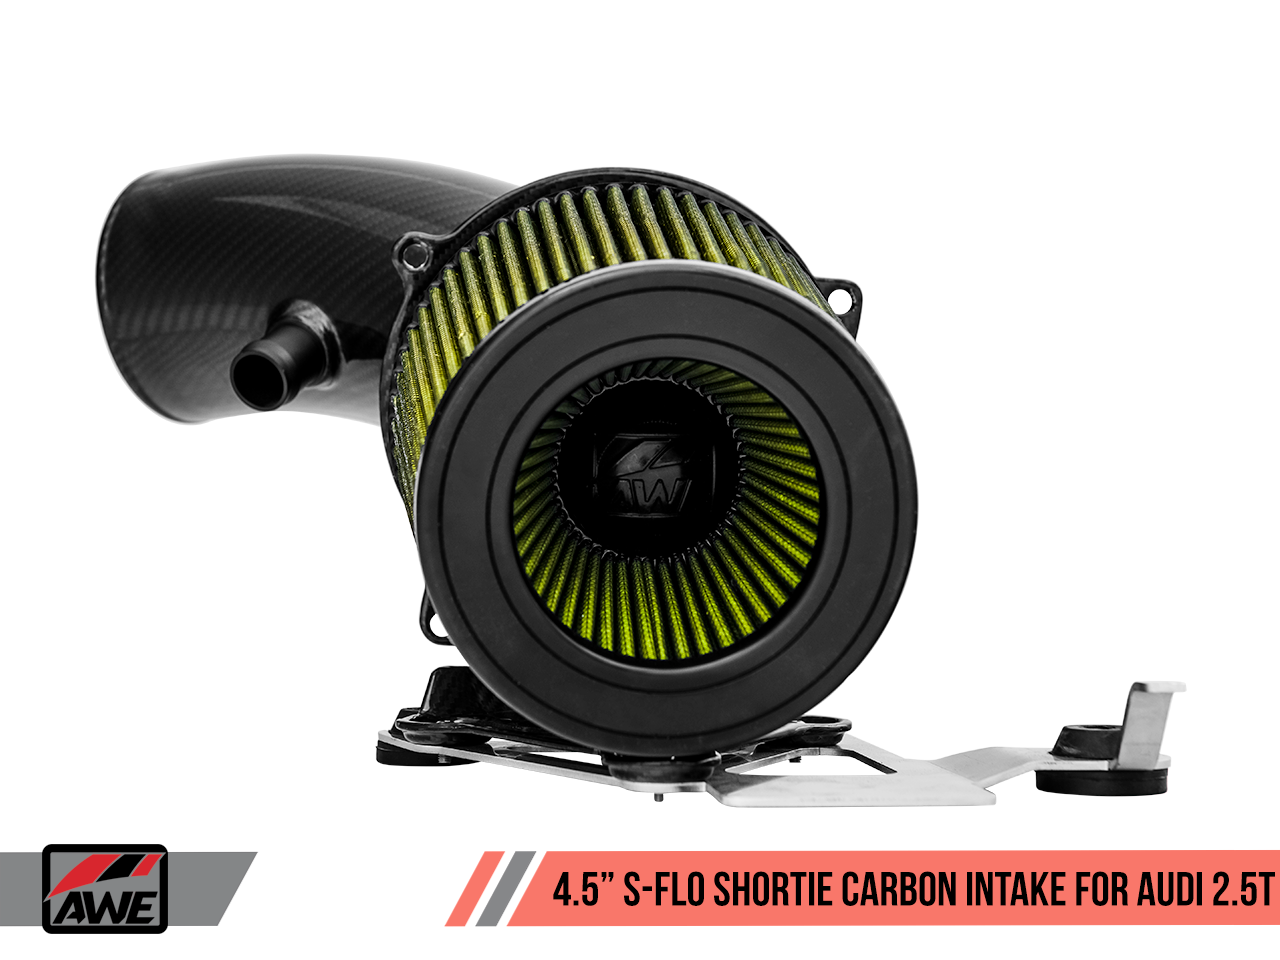 """AWE Tuning 4.5"""" S-FLO Shortie Carbon Intake for Audi RS 3 / TT RS"""